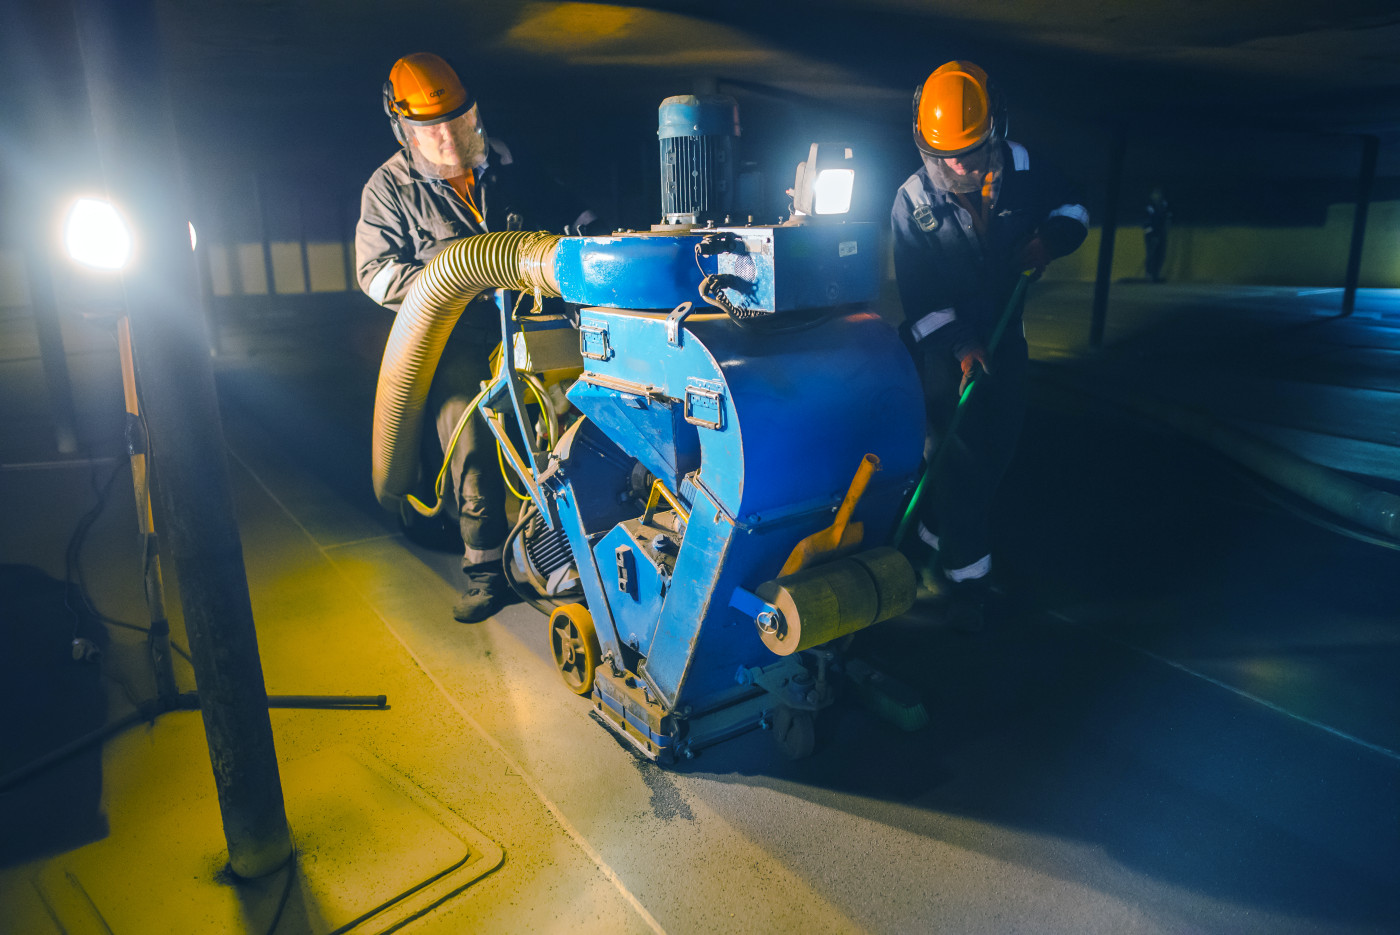 "SPE 20"" shot blaster removing contaminants and profiling a oil tank floor"